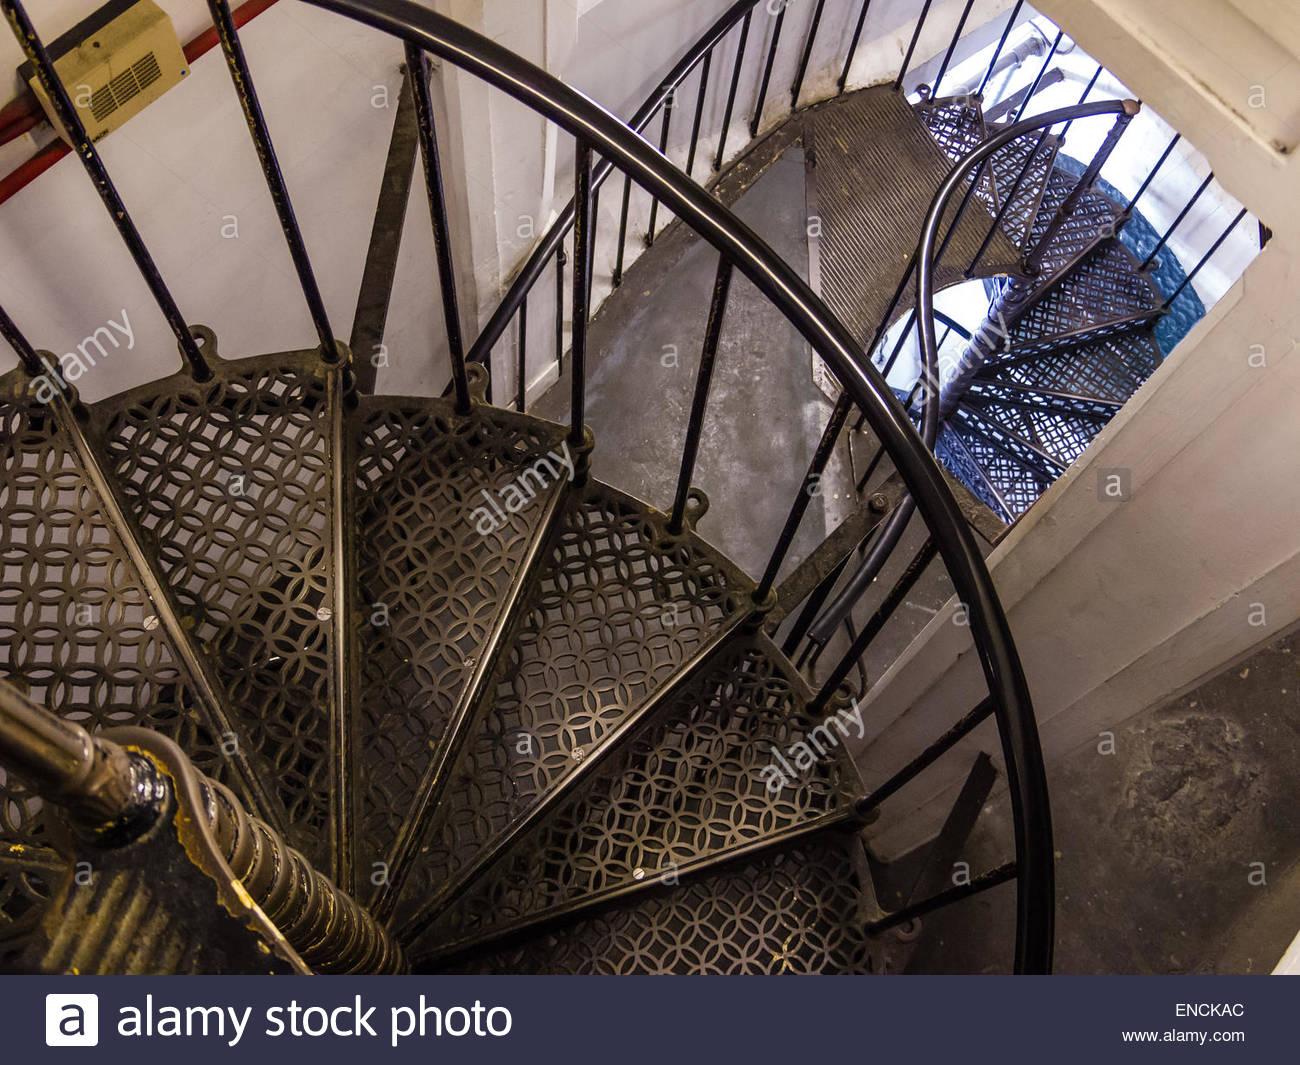 St Paul's Stair Case to Golden Tower London England Stock Photo